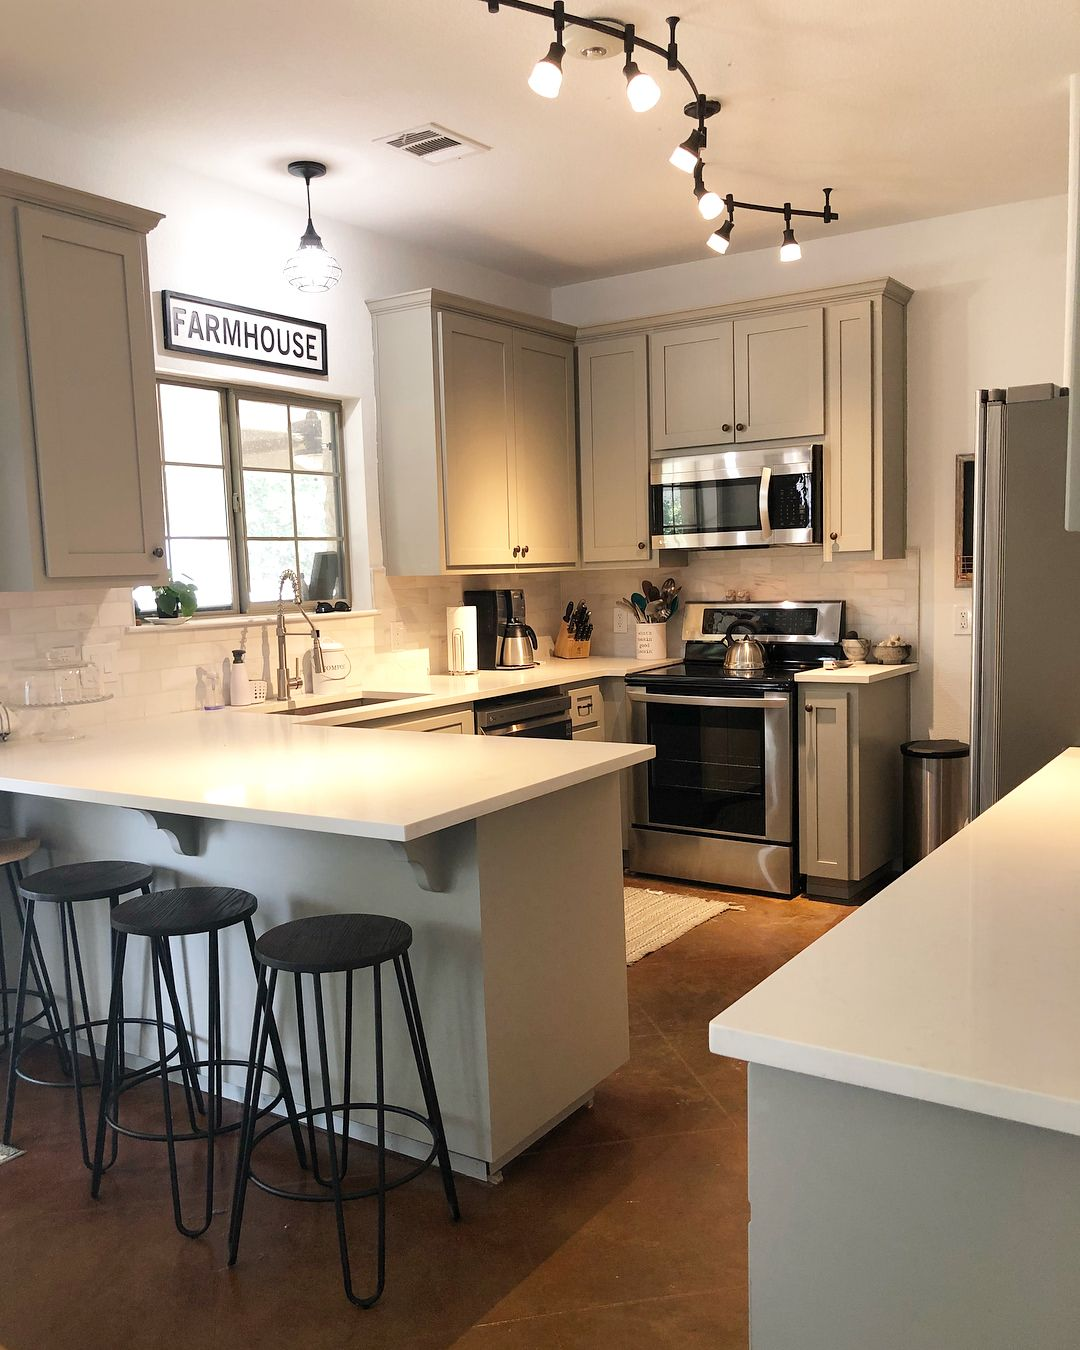 SW Dorian gray on these cabinets and new Carrara quartz for the countertops! The backsplash is ...